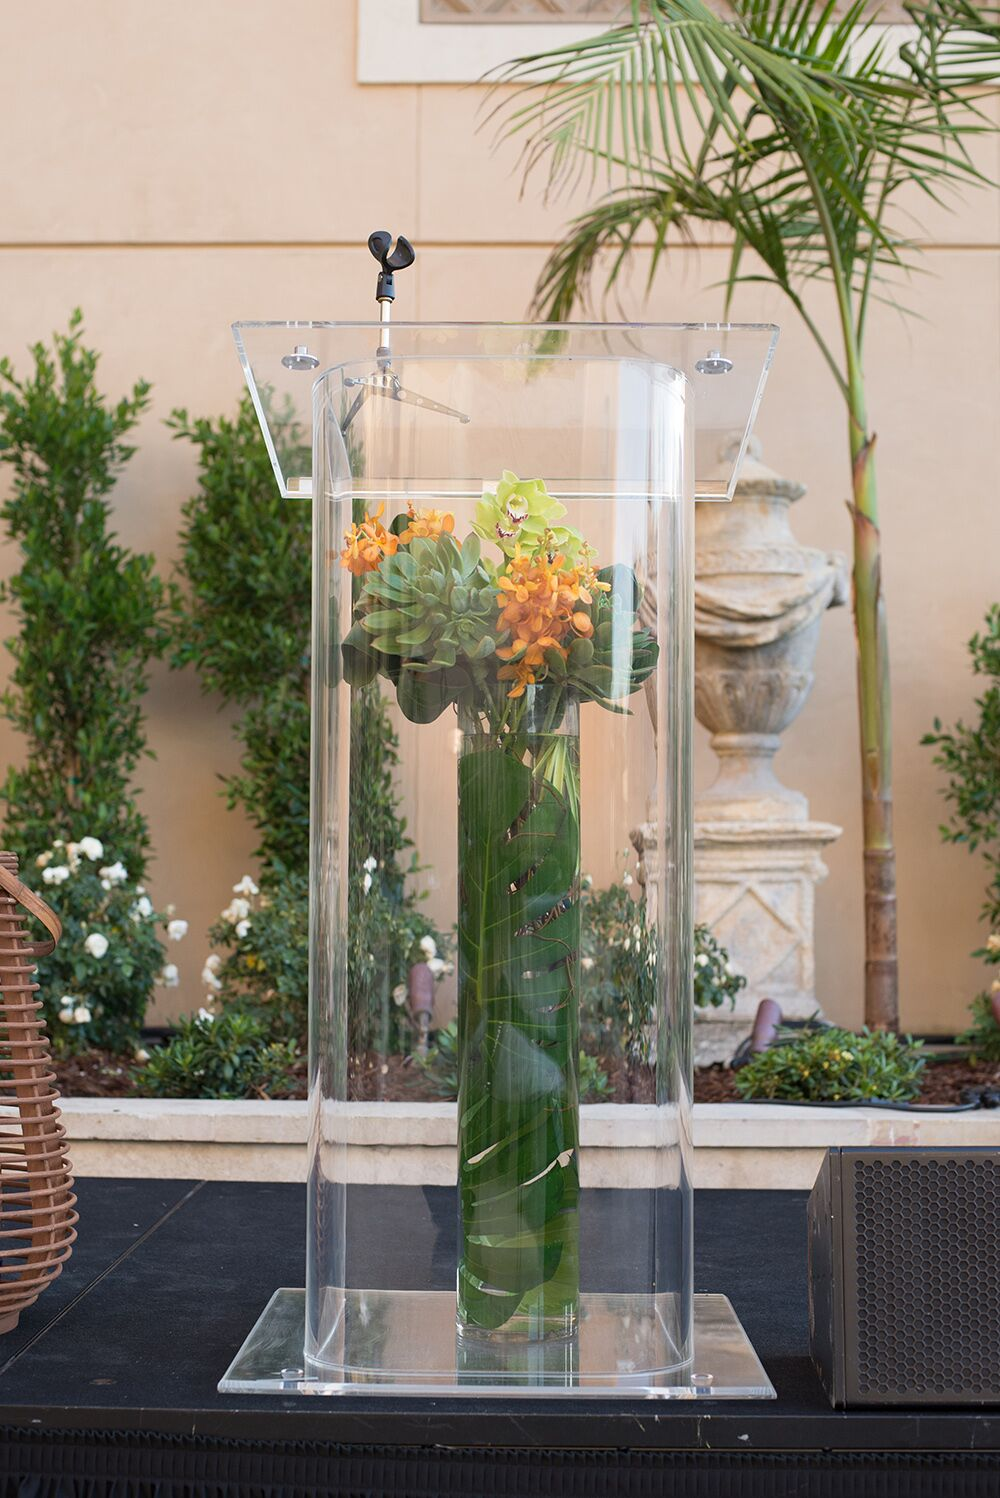 Flower arrangement inside lucite podium